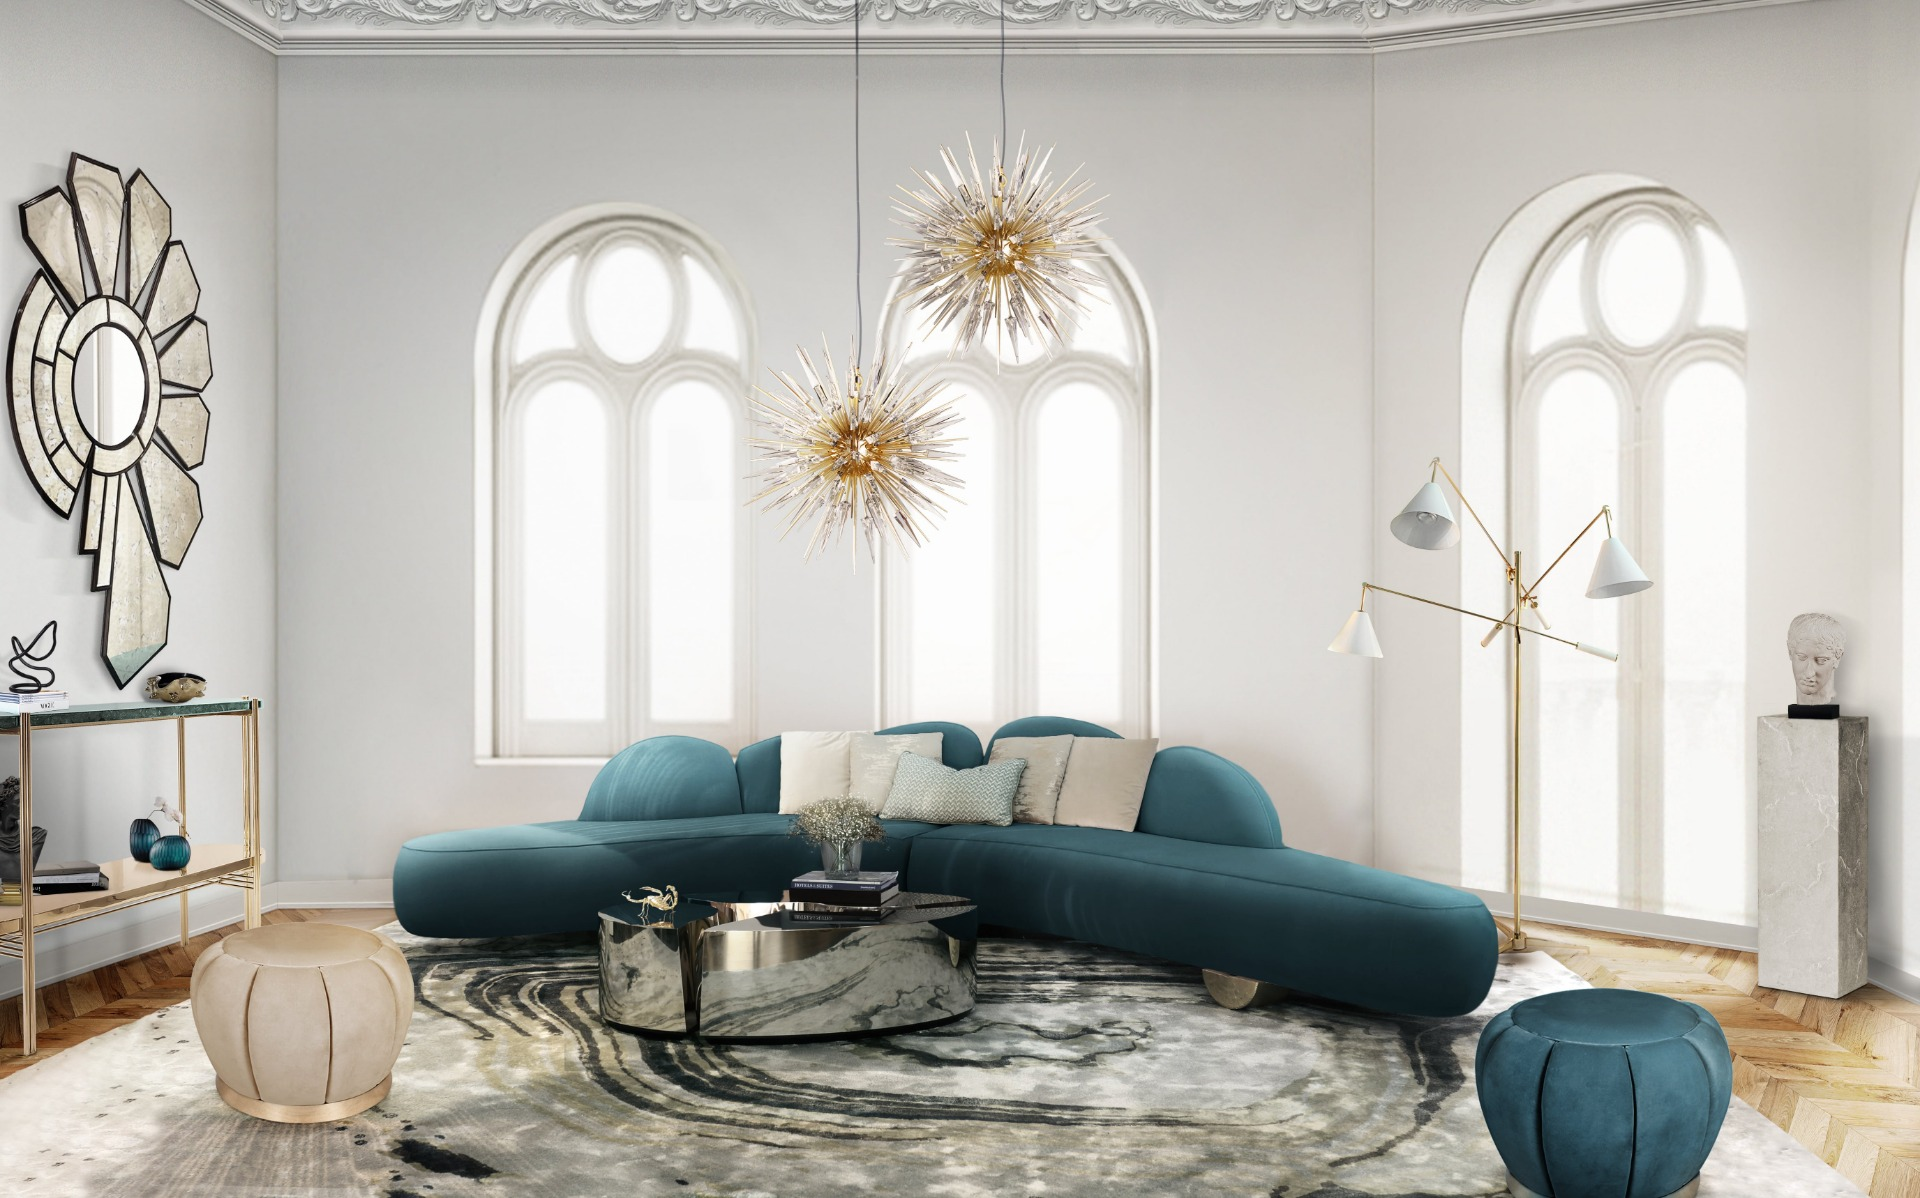 Insplosion_Extravagant_and_Breathtaking_Living_Room_boca_do_Lobo_Covet_House_DelightFULL